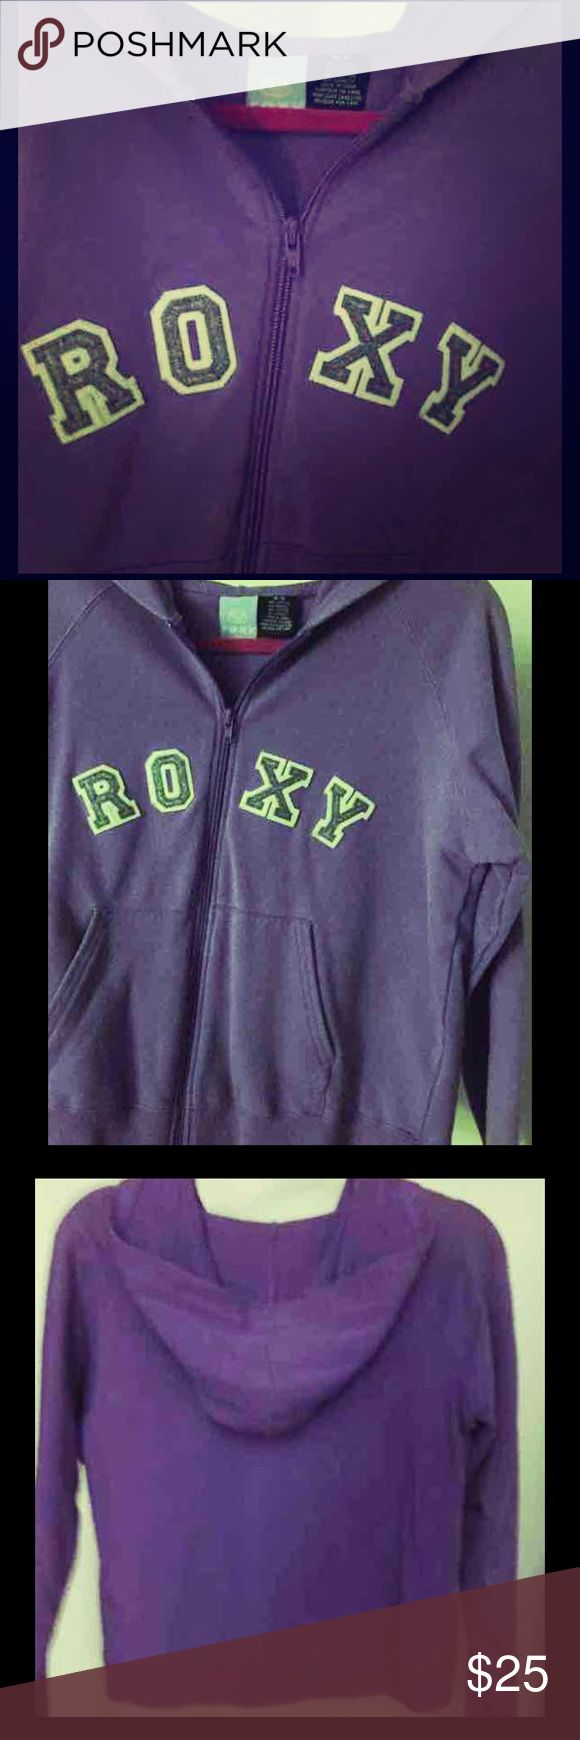 Roxy Purple Zip Up Hoodie Sz m Carefully loved but time for closet refresh! Comfy and roomy with front slash pockets. Grey Roxy embroidered lettering across chest. Roxy Sweaters